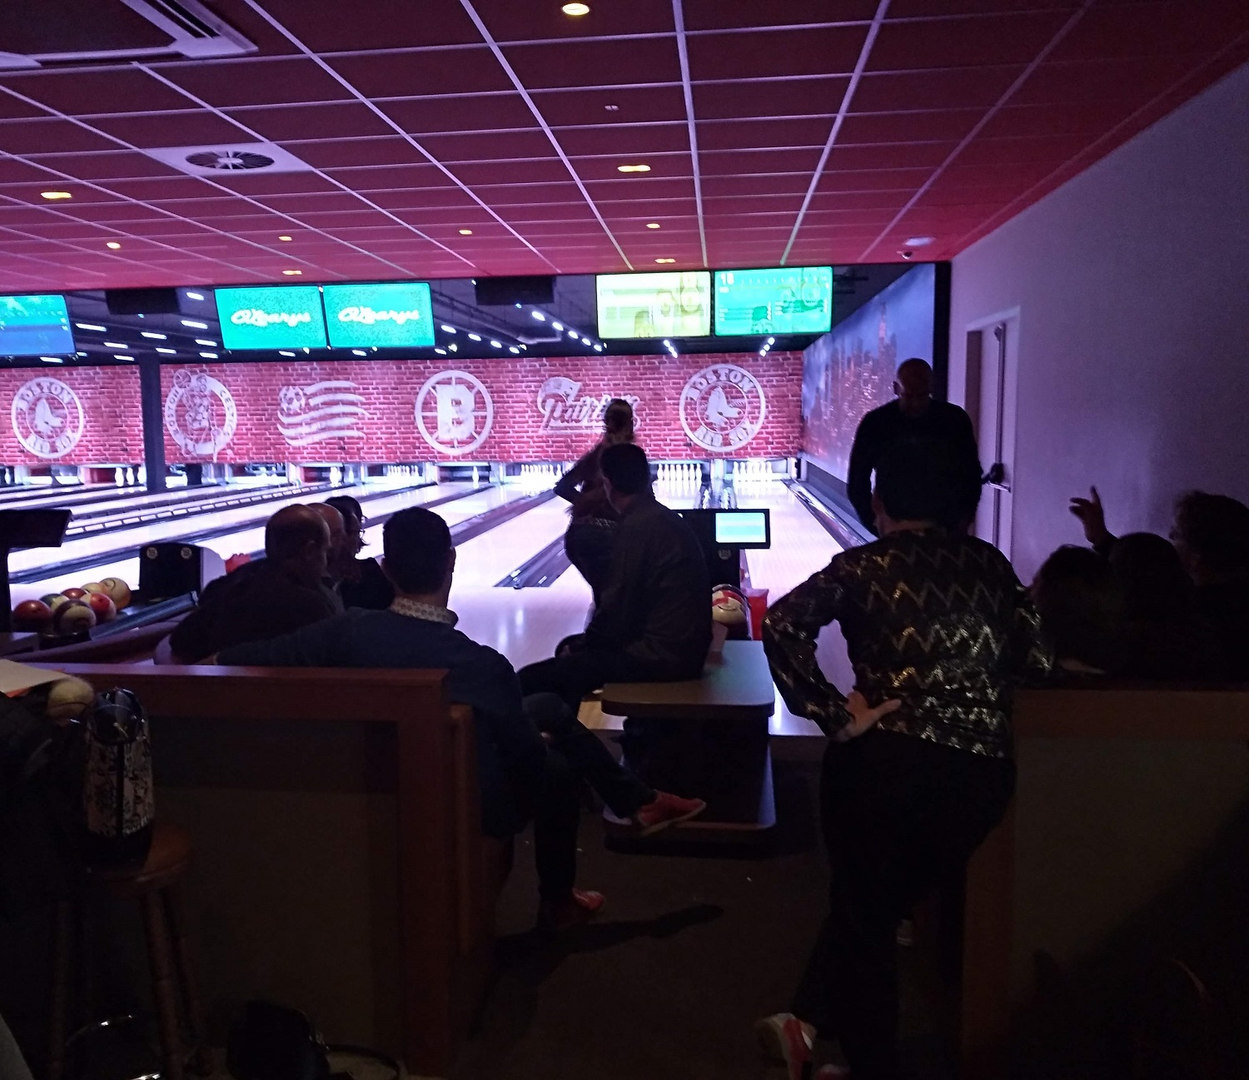 Bowling in Gent